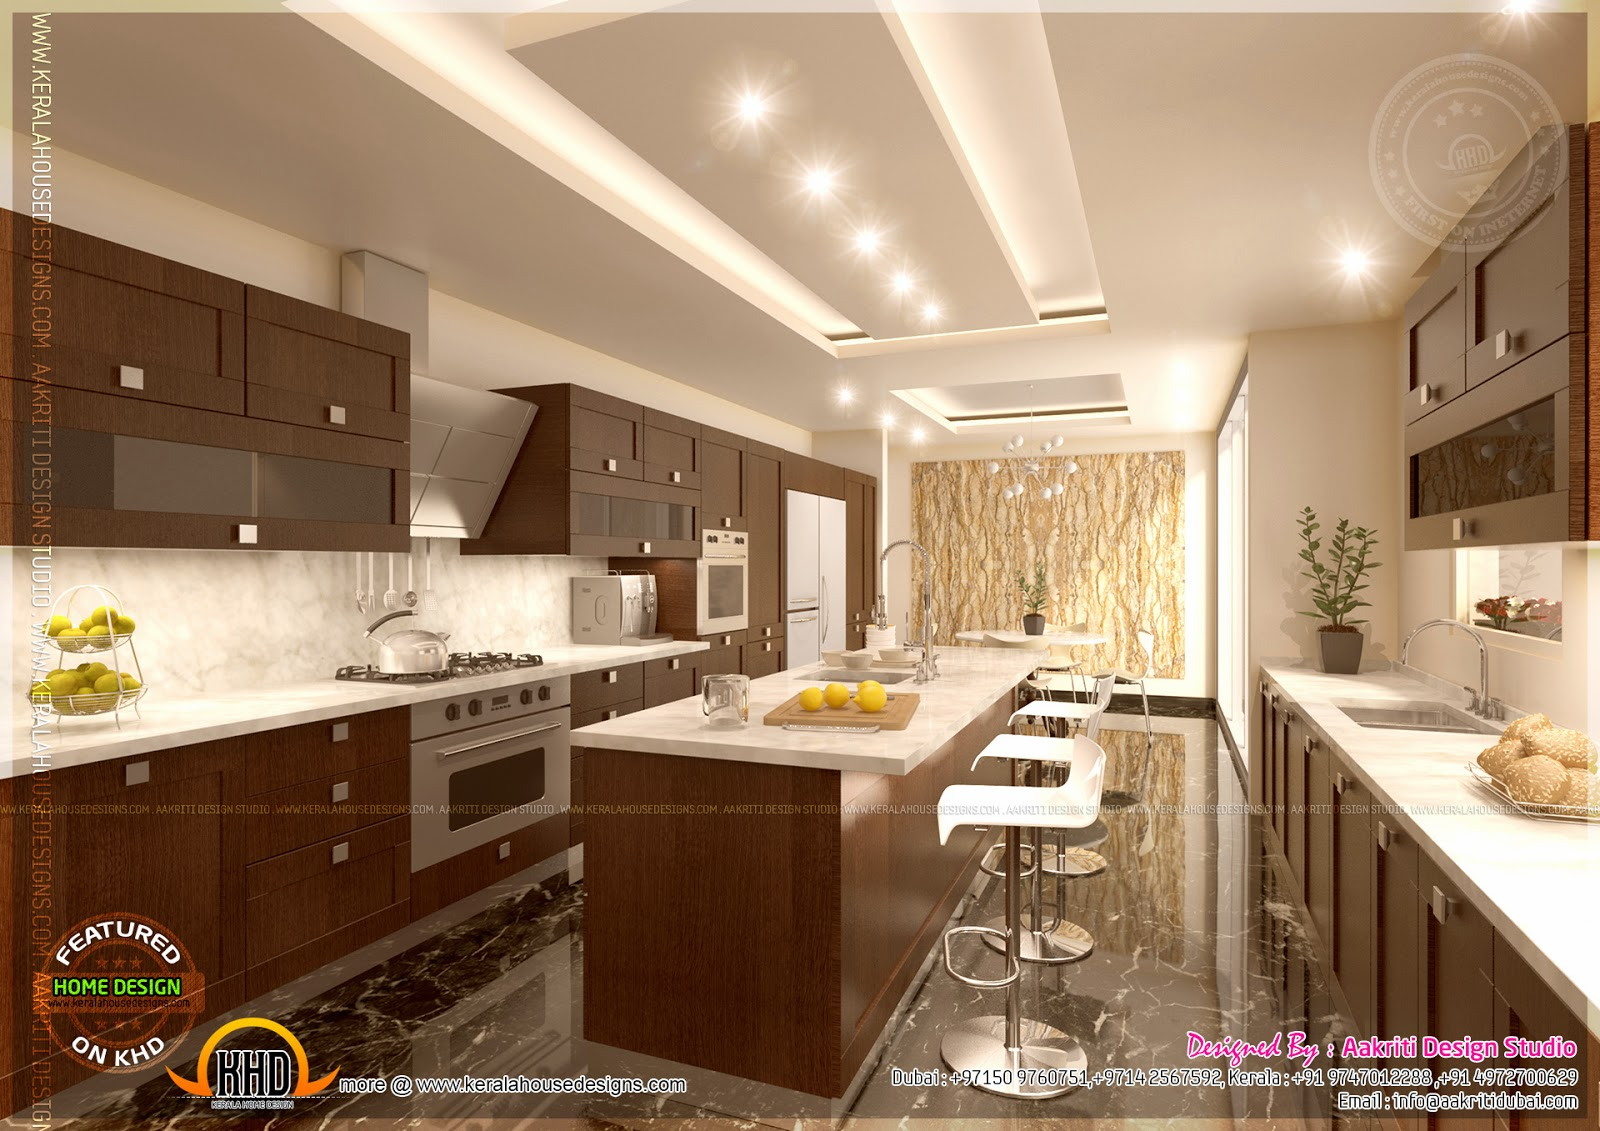 Kitchen designs by aakriti design studio kerala home for Kitchen designs and layout